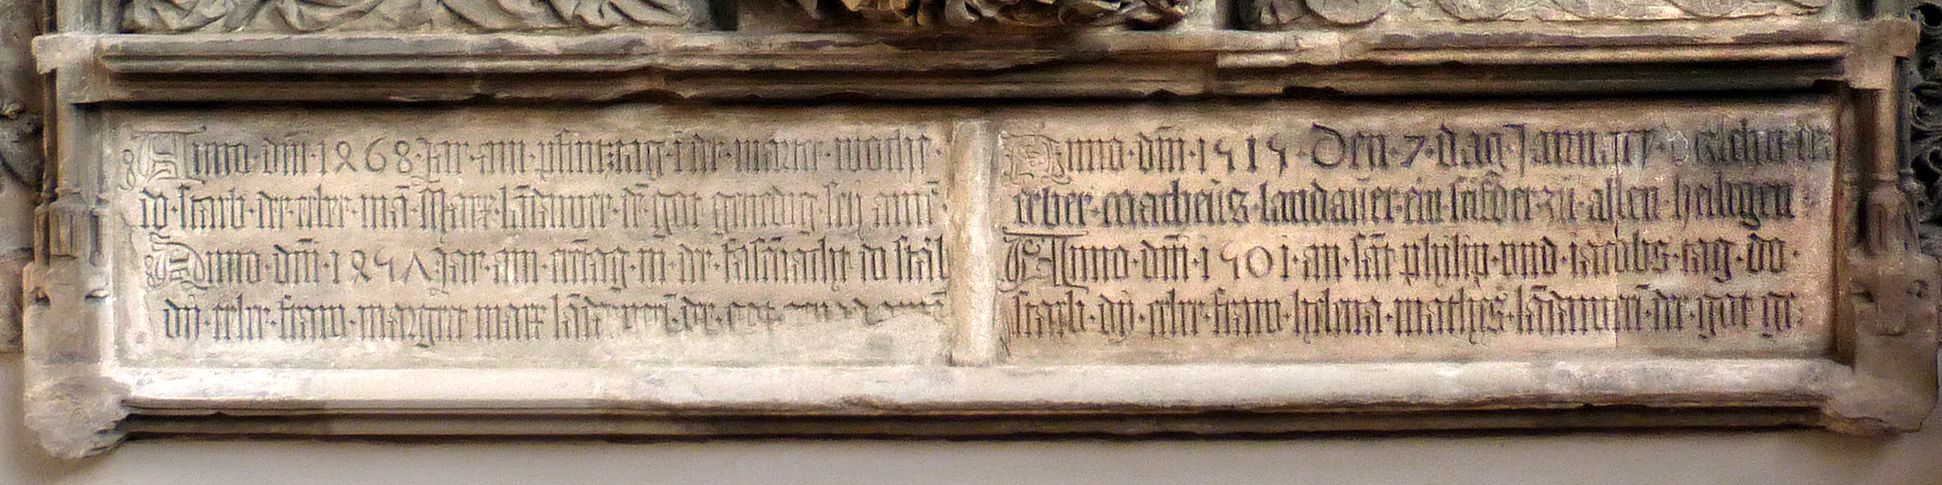 Landauer epitaph Inscription tablet: on the left: Marx and Margareta, on the right Matthäus and Helena